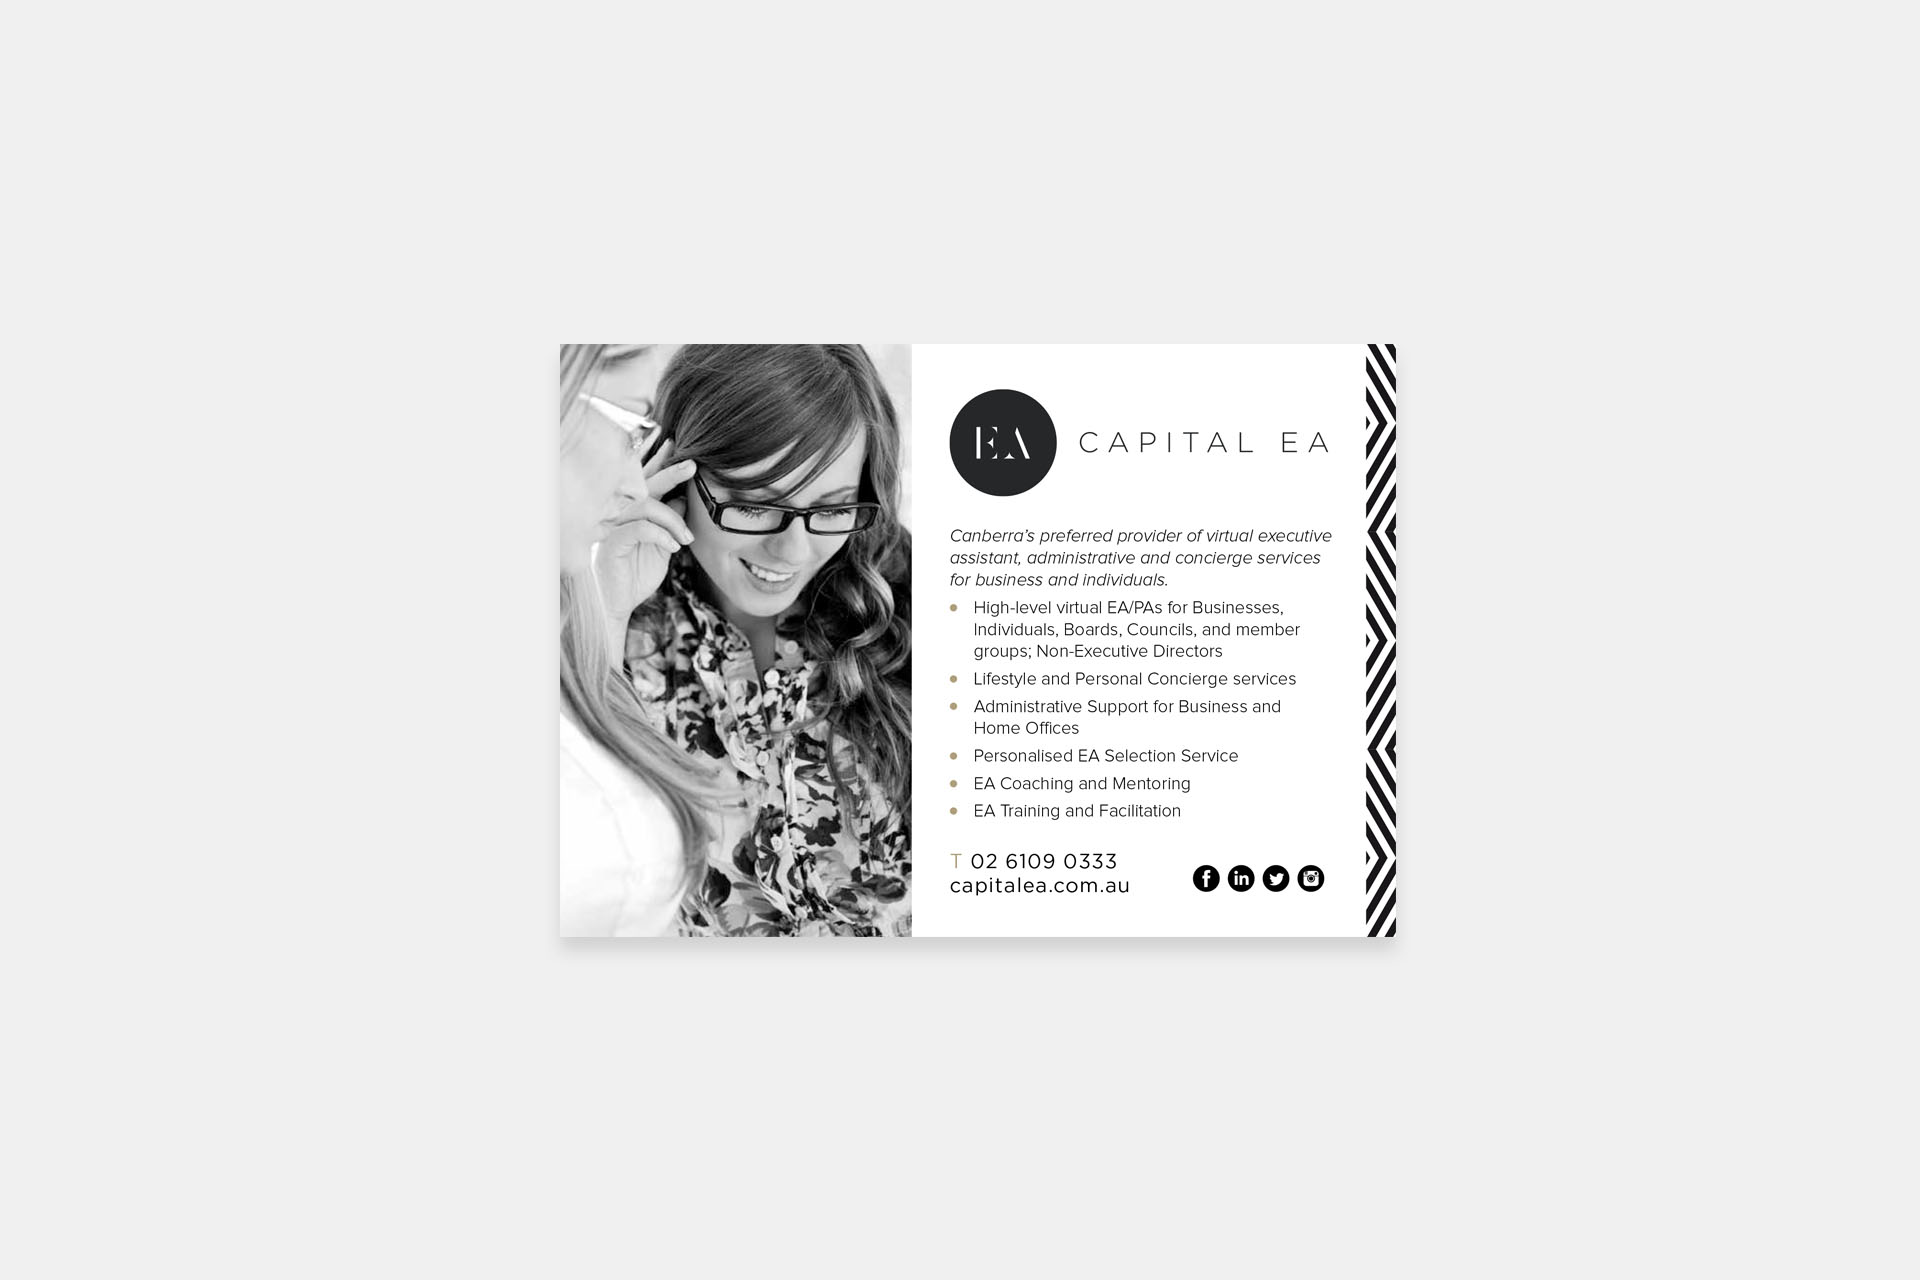 Capital EA branding by Leysa Flores